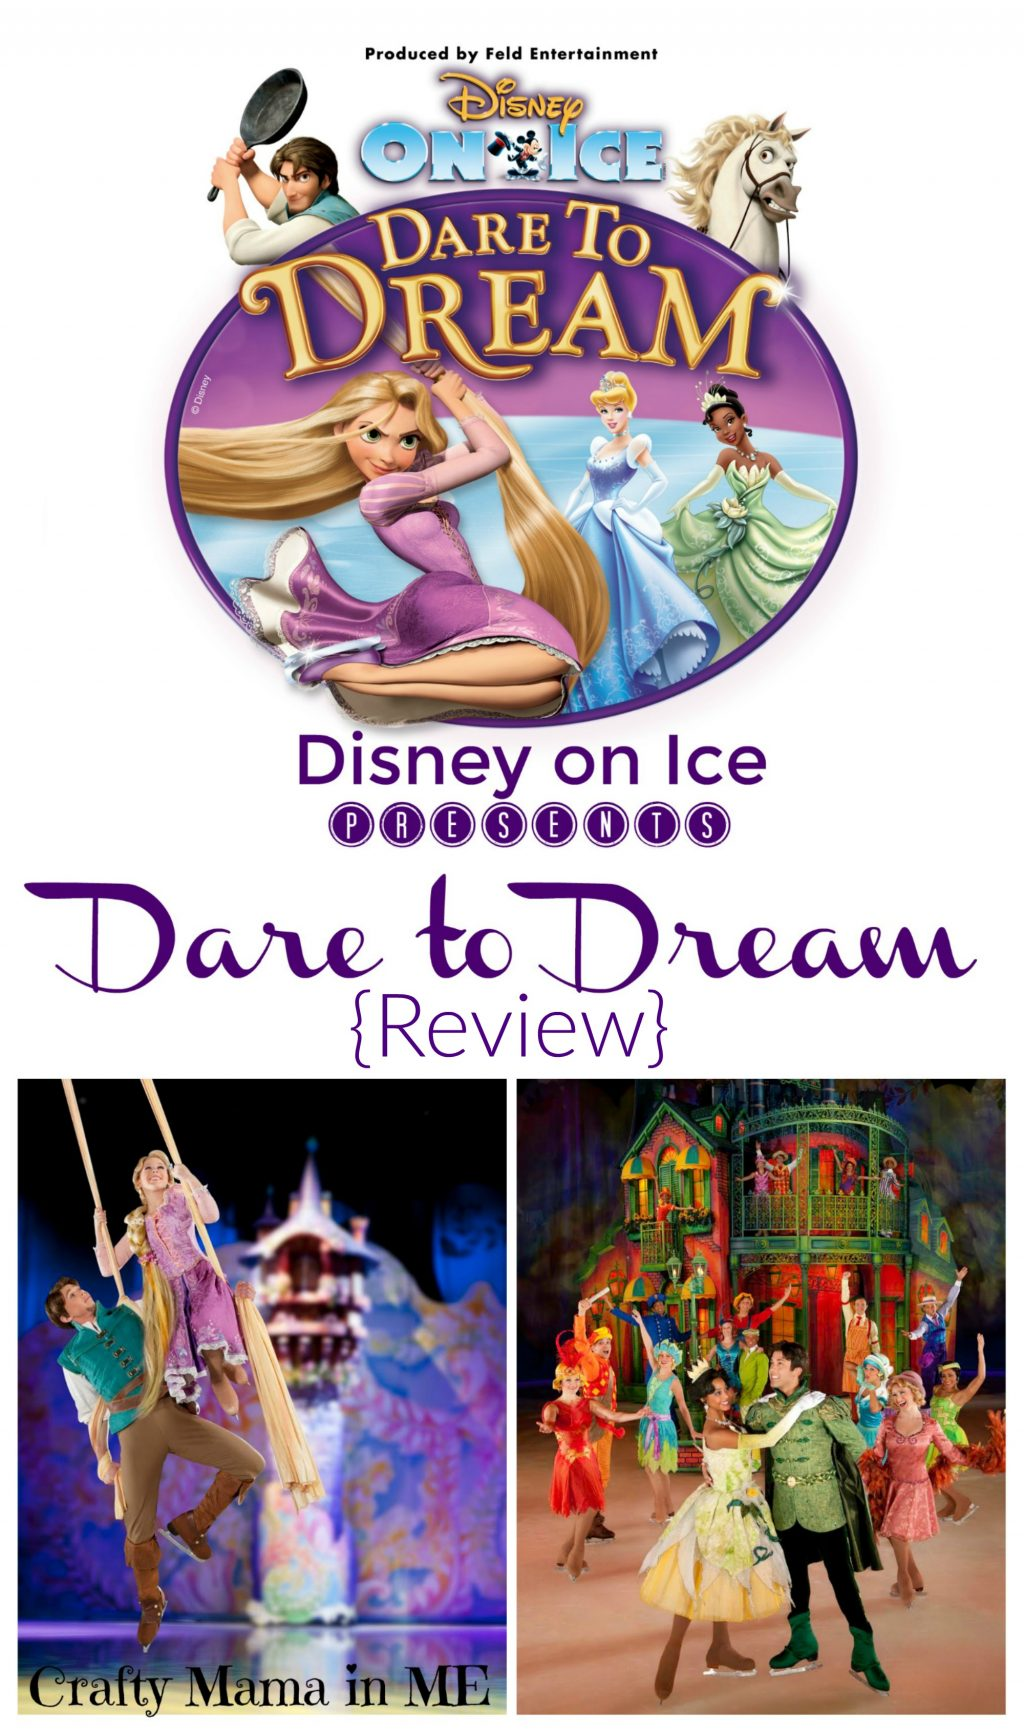 Disney on Ice - Dare to Dream Review